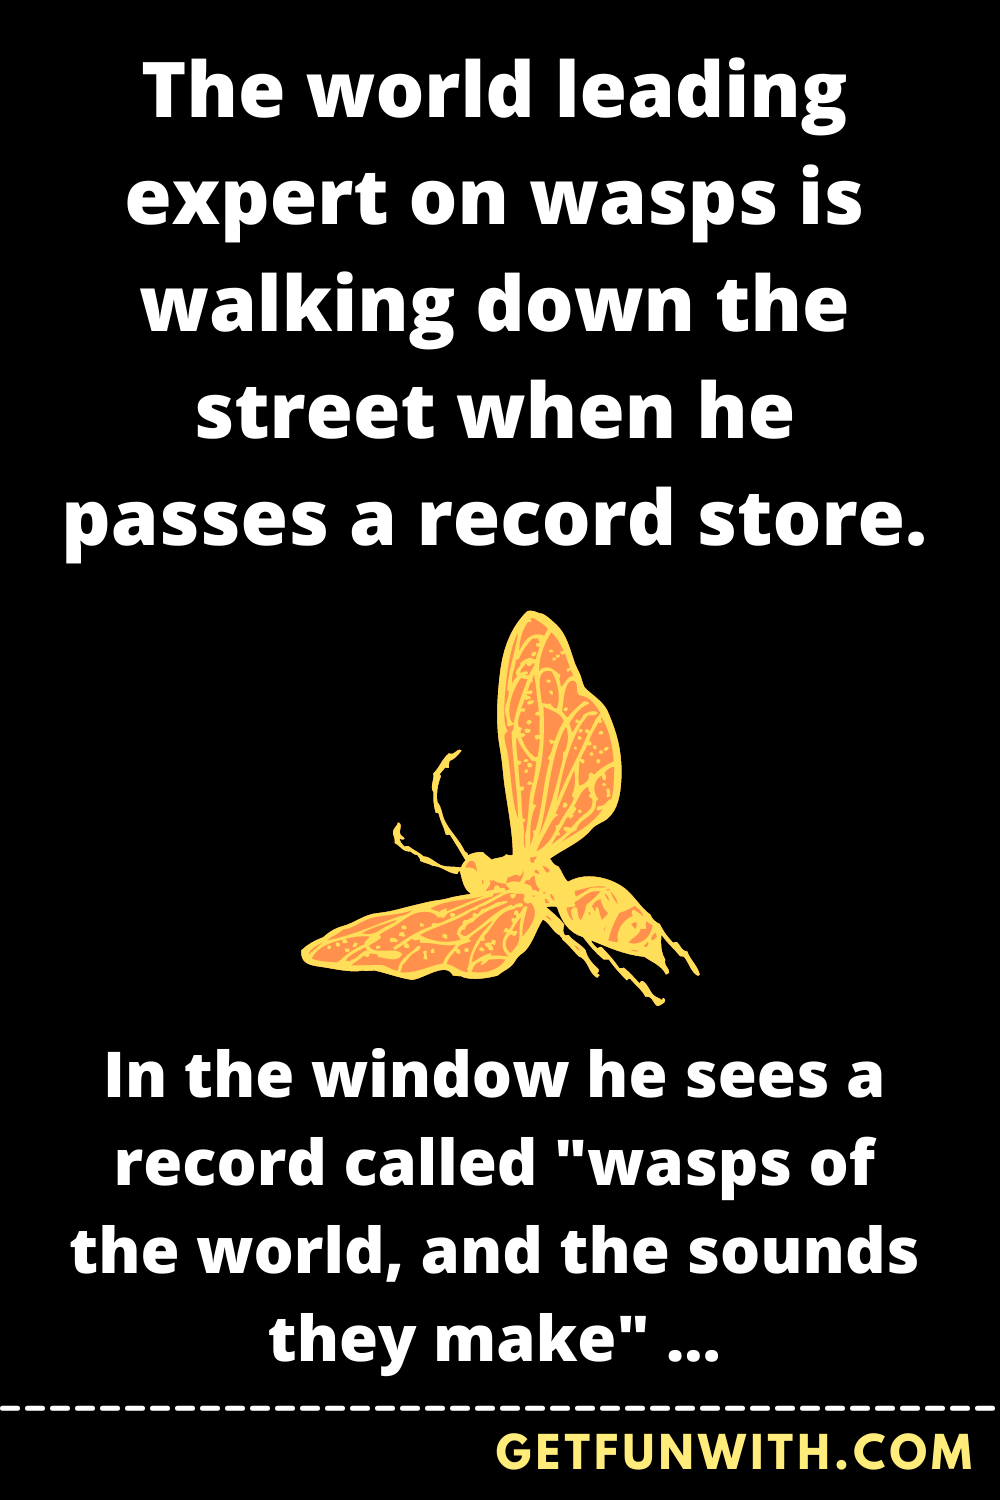 The world leading expert on wasps is walking down the street when he passes a record store.